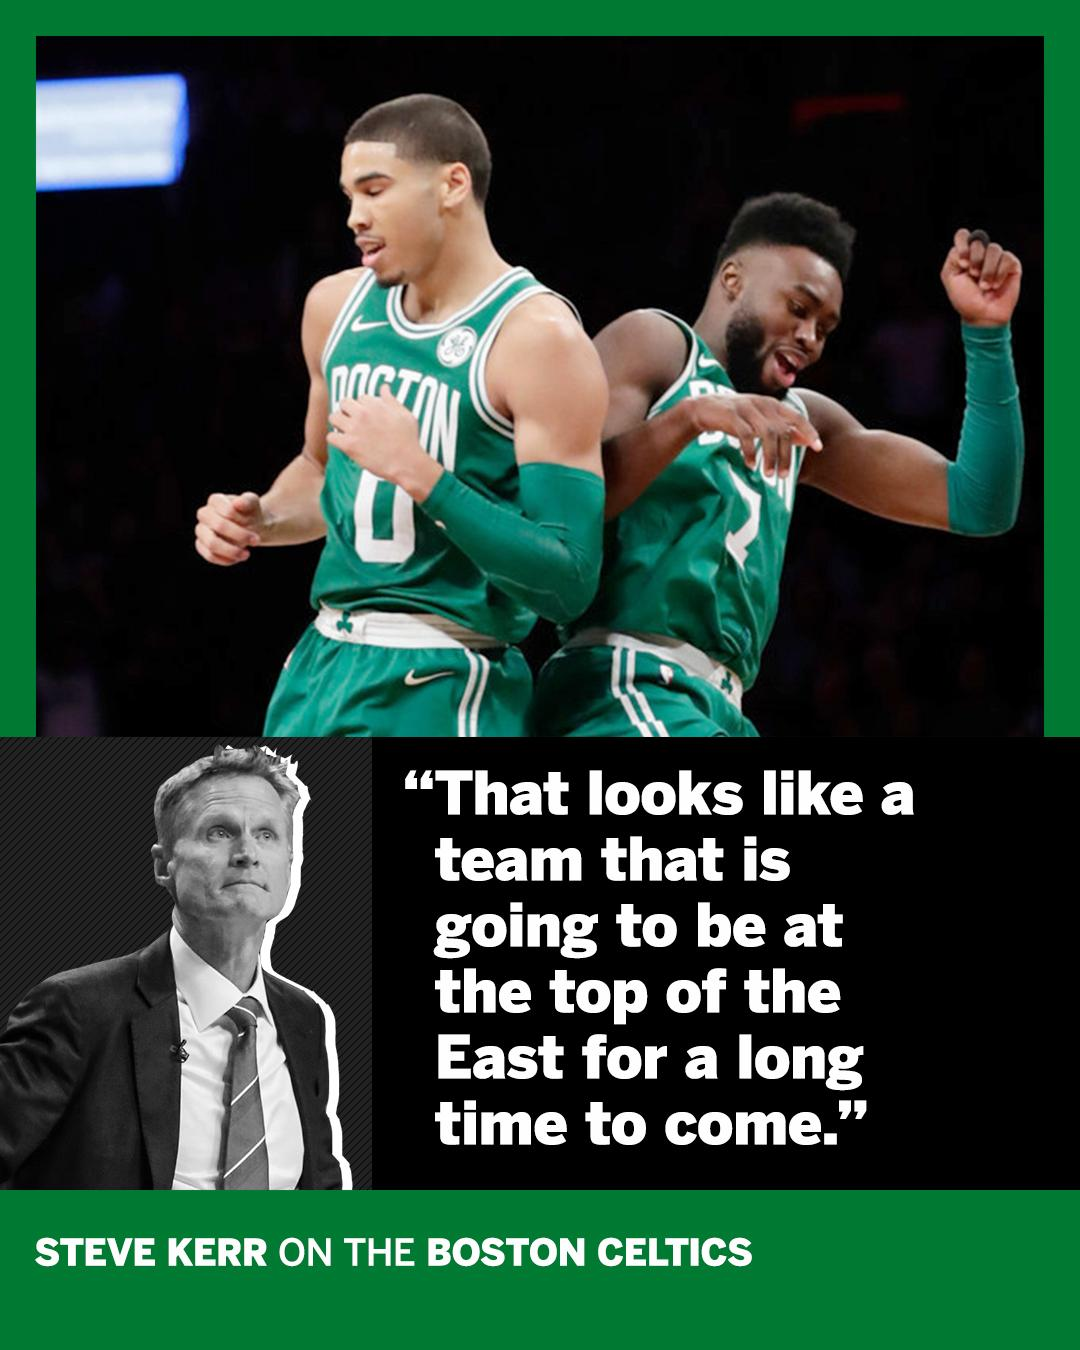 The Celtics' 13 straight wins have Steve Kerr looking to the future. https://t.co/WBAP9Cyo6i